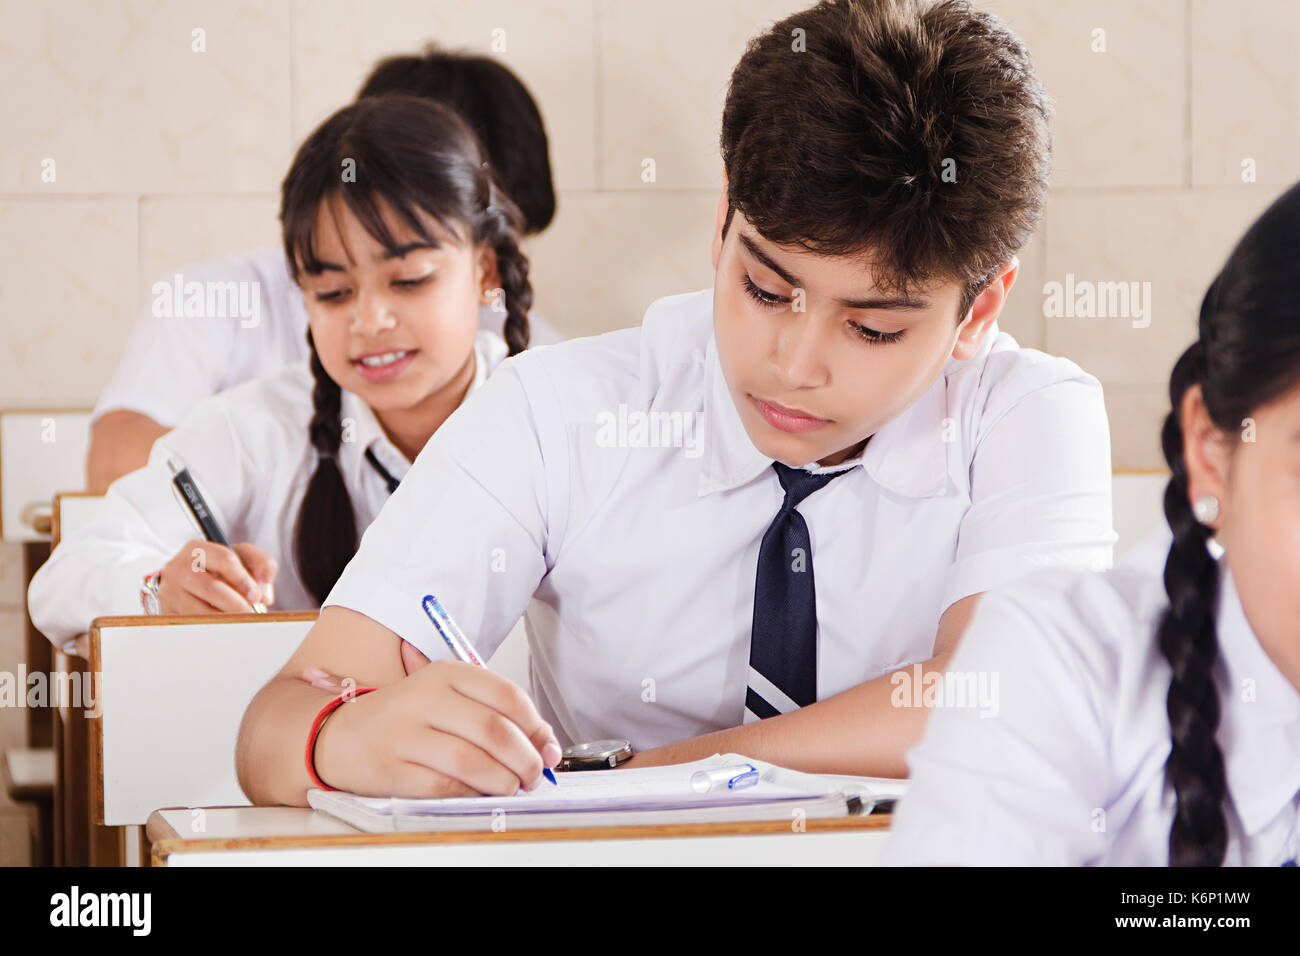 indian high school students notebook writing education in classroom